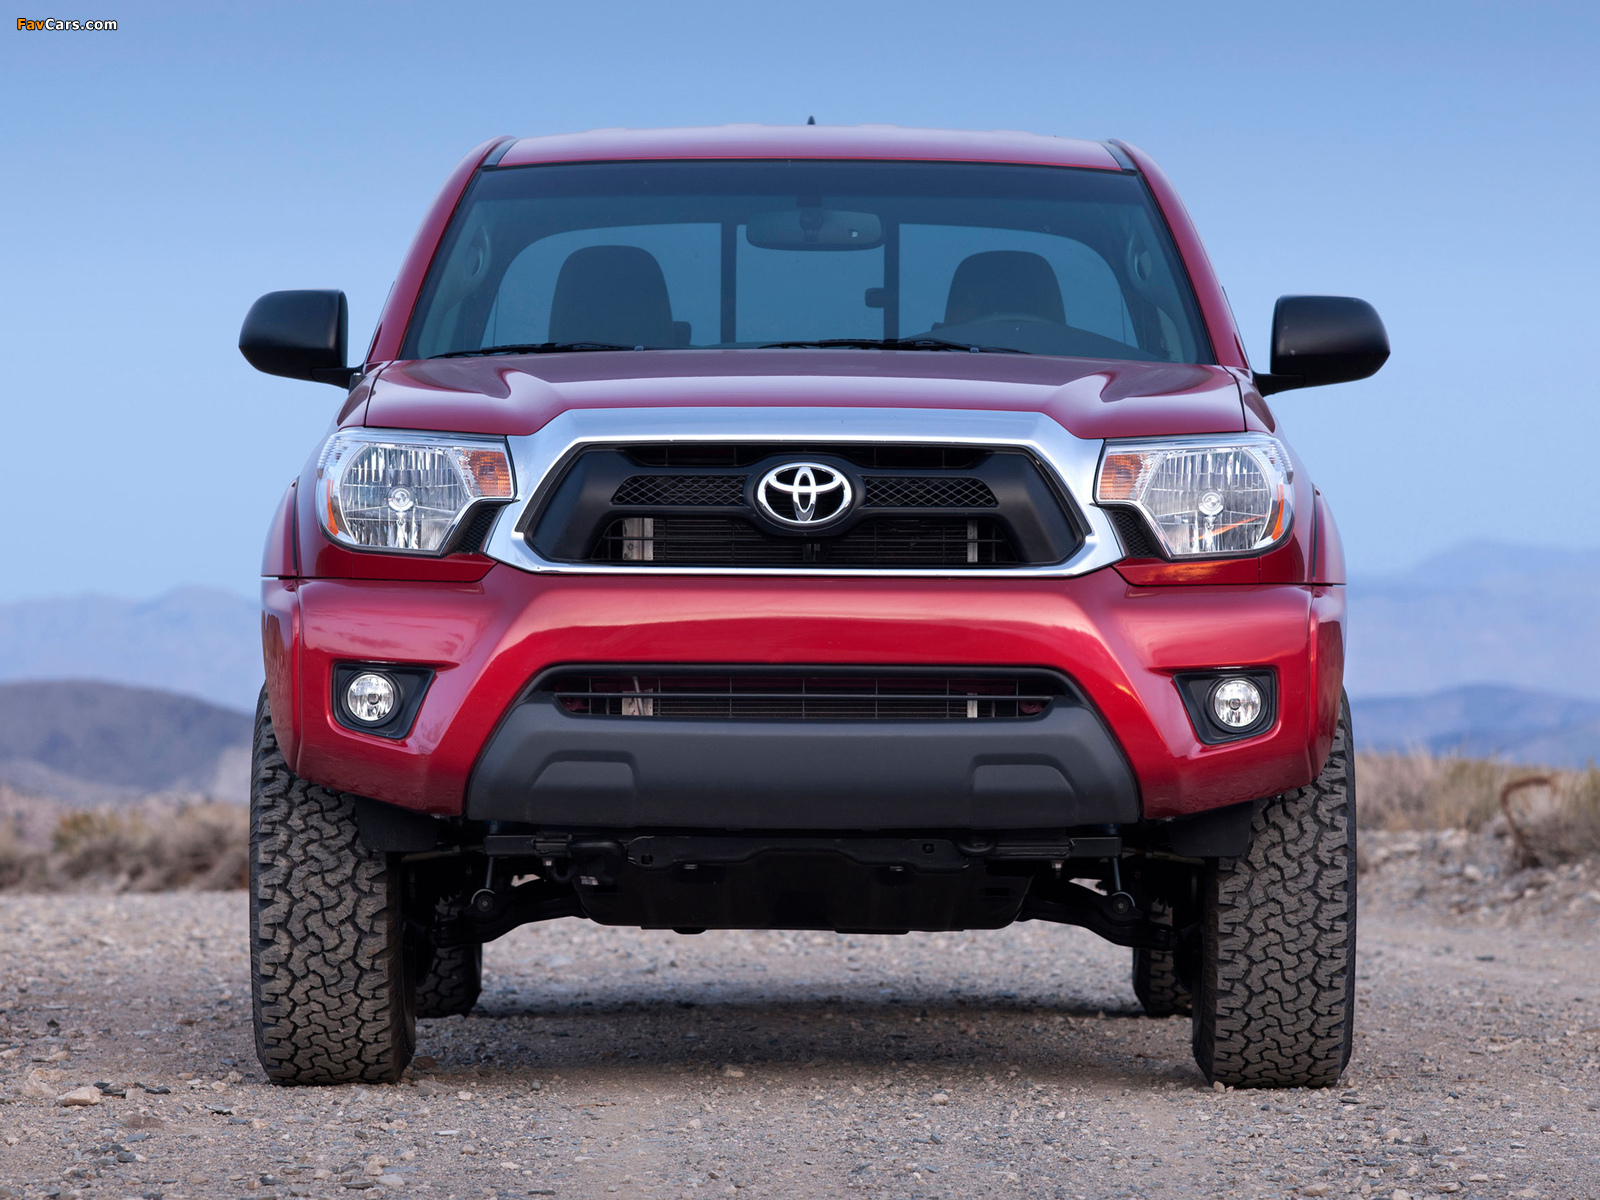 Trd toyota tacoma access cab t x baja series limited edition 2012